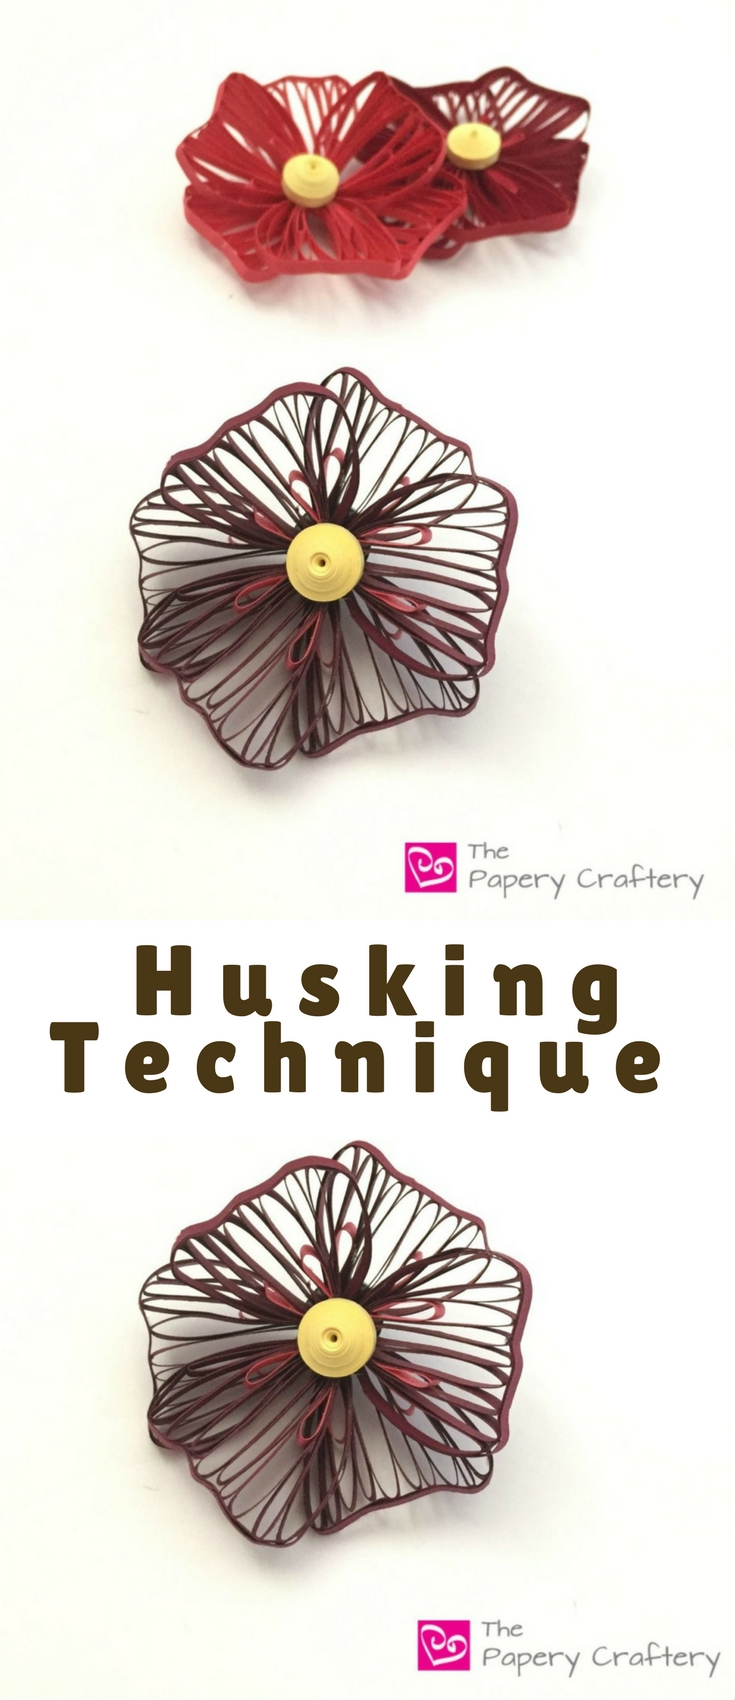 Husking paper is definitely outside of the normal realm of quilling, but it doesn't have to be scary at all! It's simply a matter of wrapping strips of paper around pins over and over to create a design.